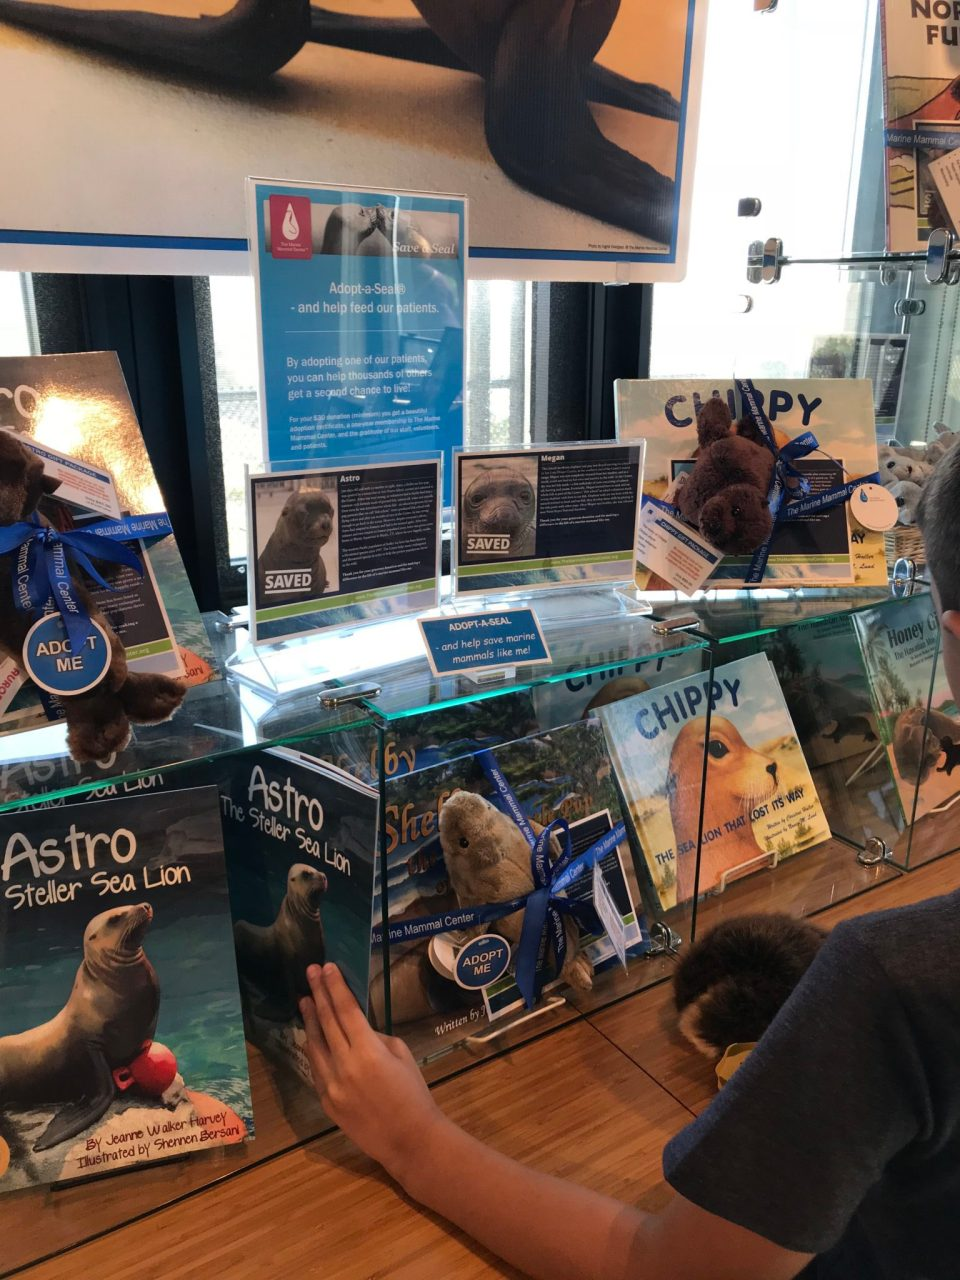 Our visit to the Marine Mammal Center